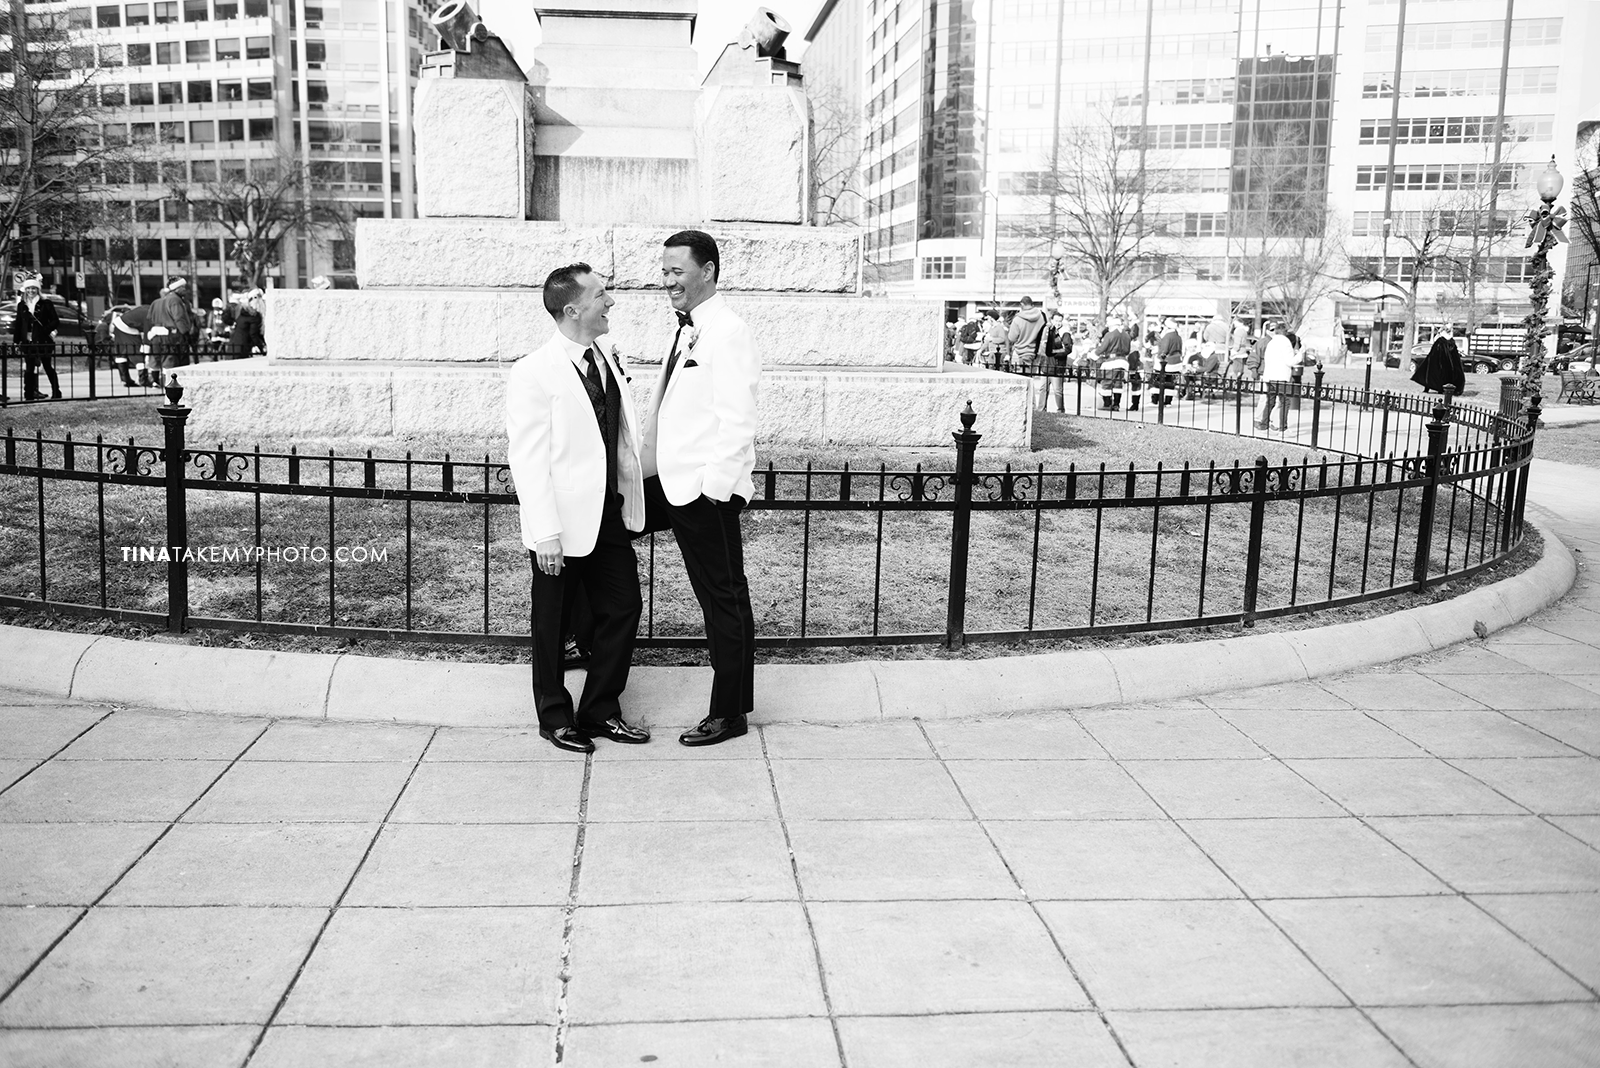 43-Washington-DC-Virginia-Gay-Same-Sex-Wedding-Men-12-13-14-Mayflower-City-Statue-Portrait-Photographer